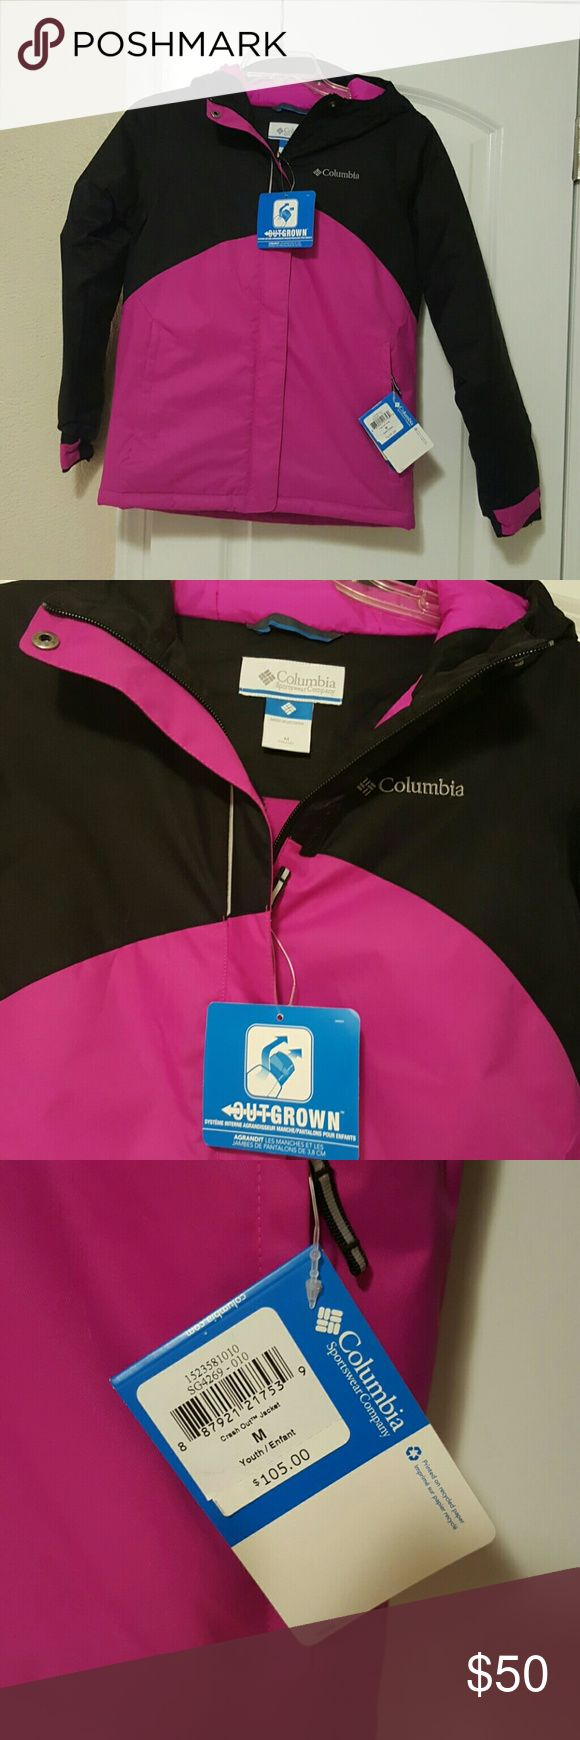 NWT Girls' Columbia Winter Jacket Brand New Girls' Columbia Coat!! Sz M (10/12) Columbia Jackets & Coats